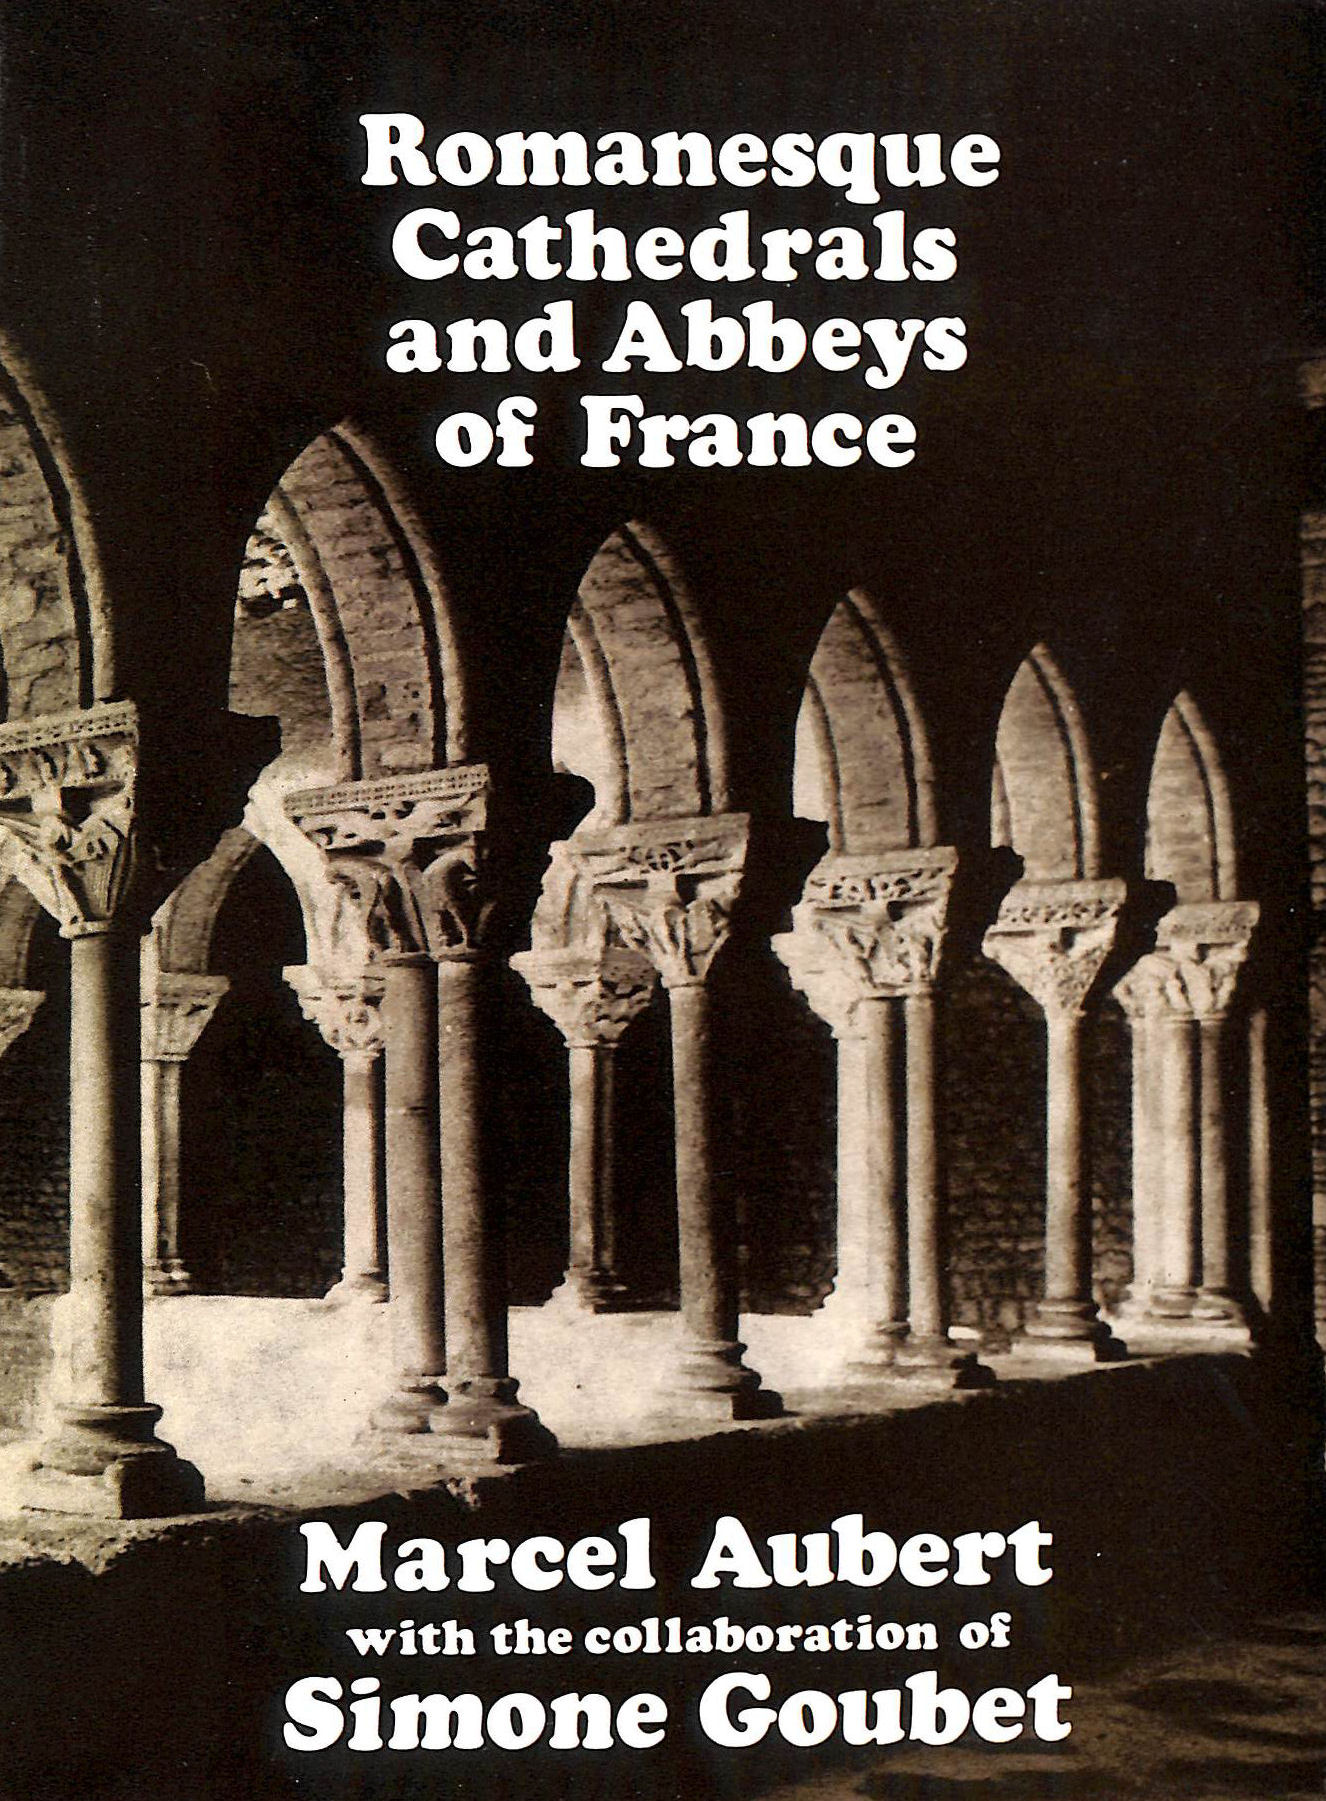 Image for Romanesque cathedrals and abbeys of France